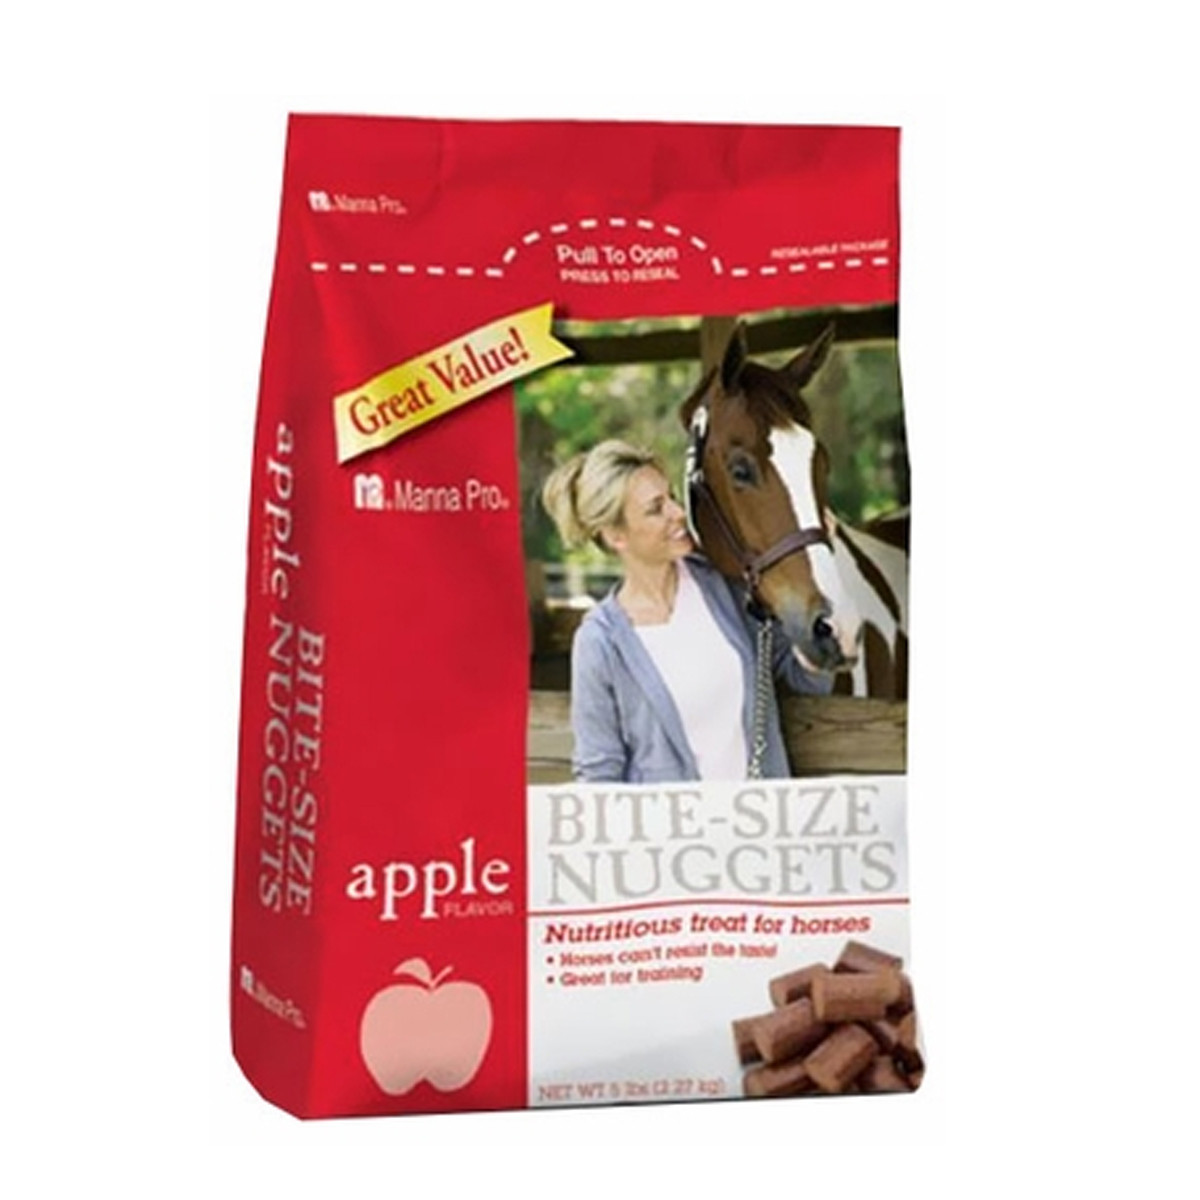 Bite-Sized Apple Nuggets for Horses - Apple 5lb